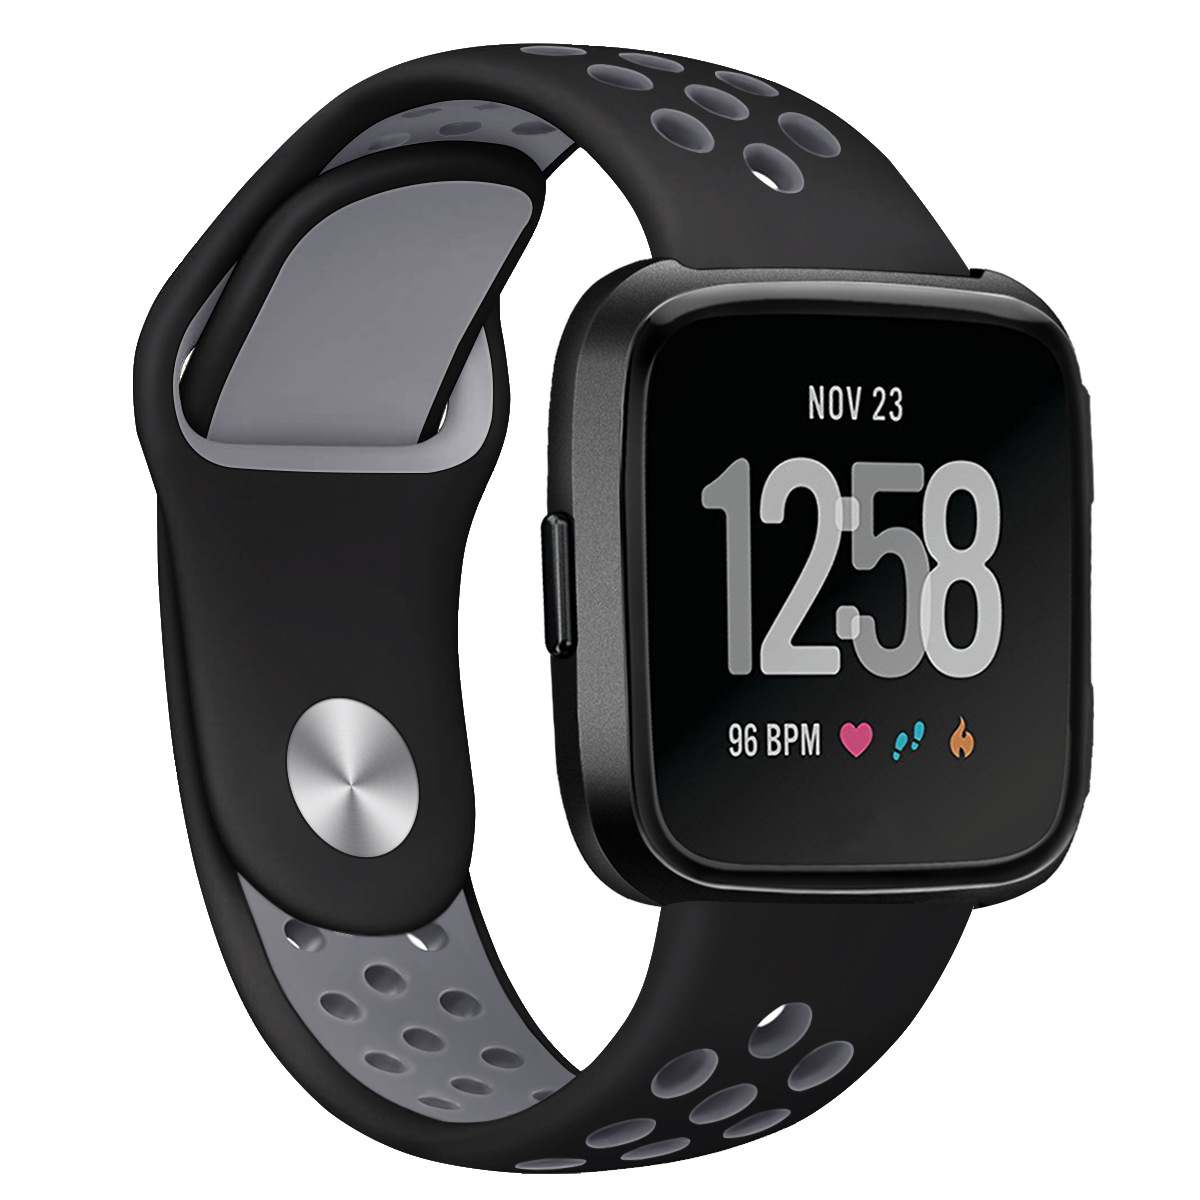 Replacement Band Sport Breathable Silicon Wristband Watch Strap for Fitbit Versa Black with gray